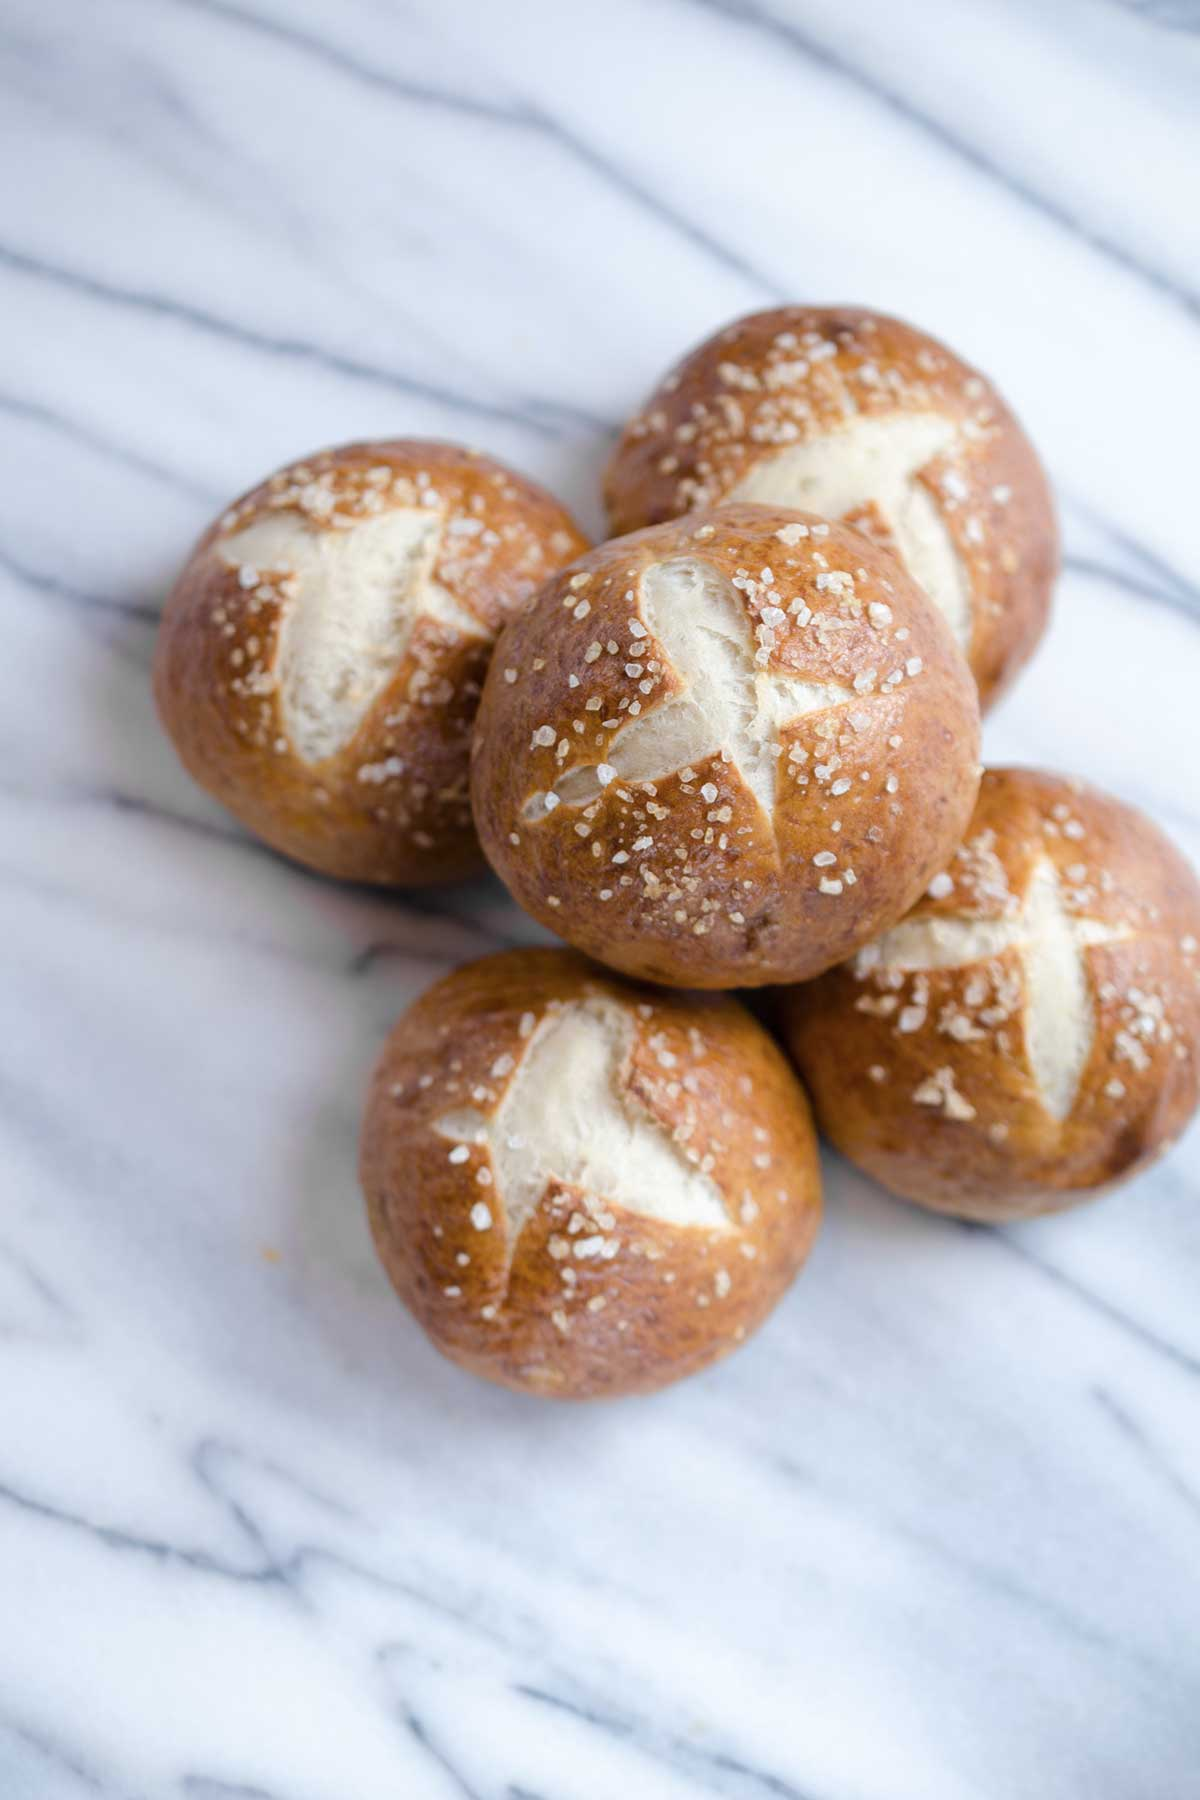 An overhead photo of 5 pretzel buns topped with coarse salt on a marble backdrop.